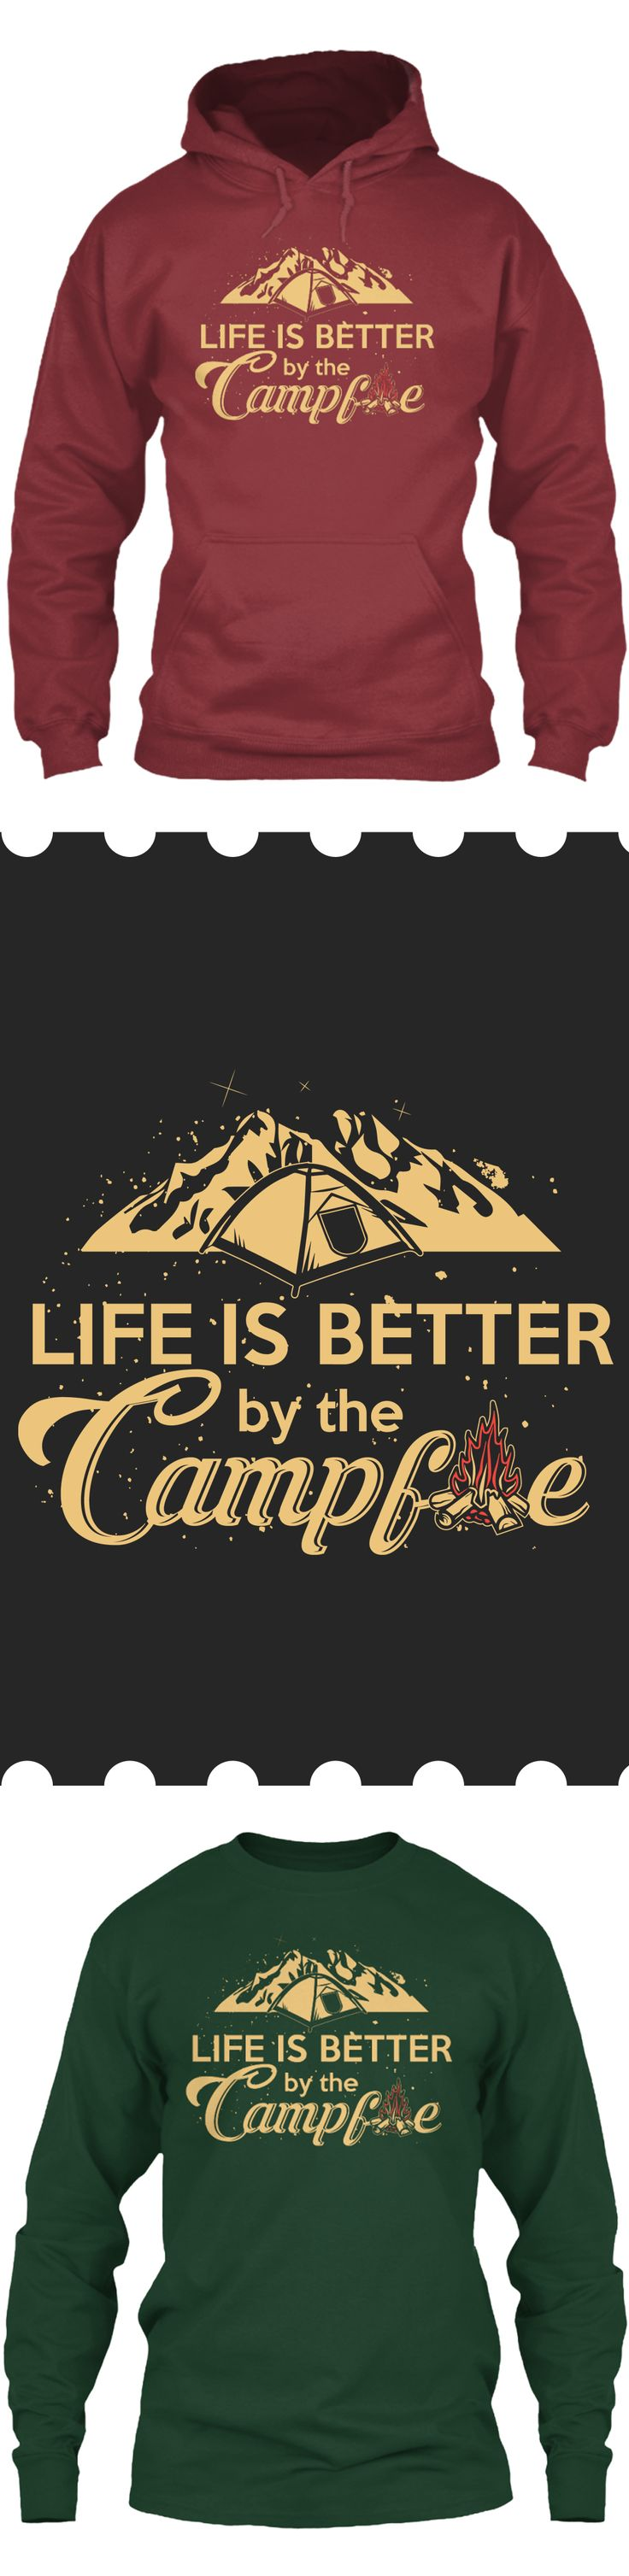 Life is better when Camping - Get this limited edition Long Sleeves and Hoodies just in time for the holidays! Only 2 days left for FREE SHIPPING, click to buy now!